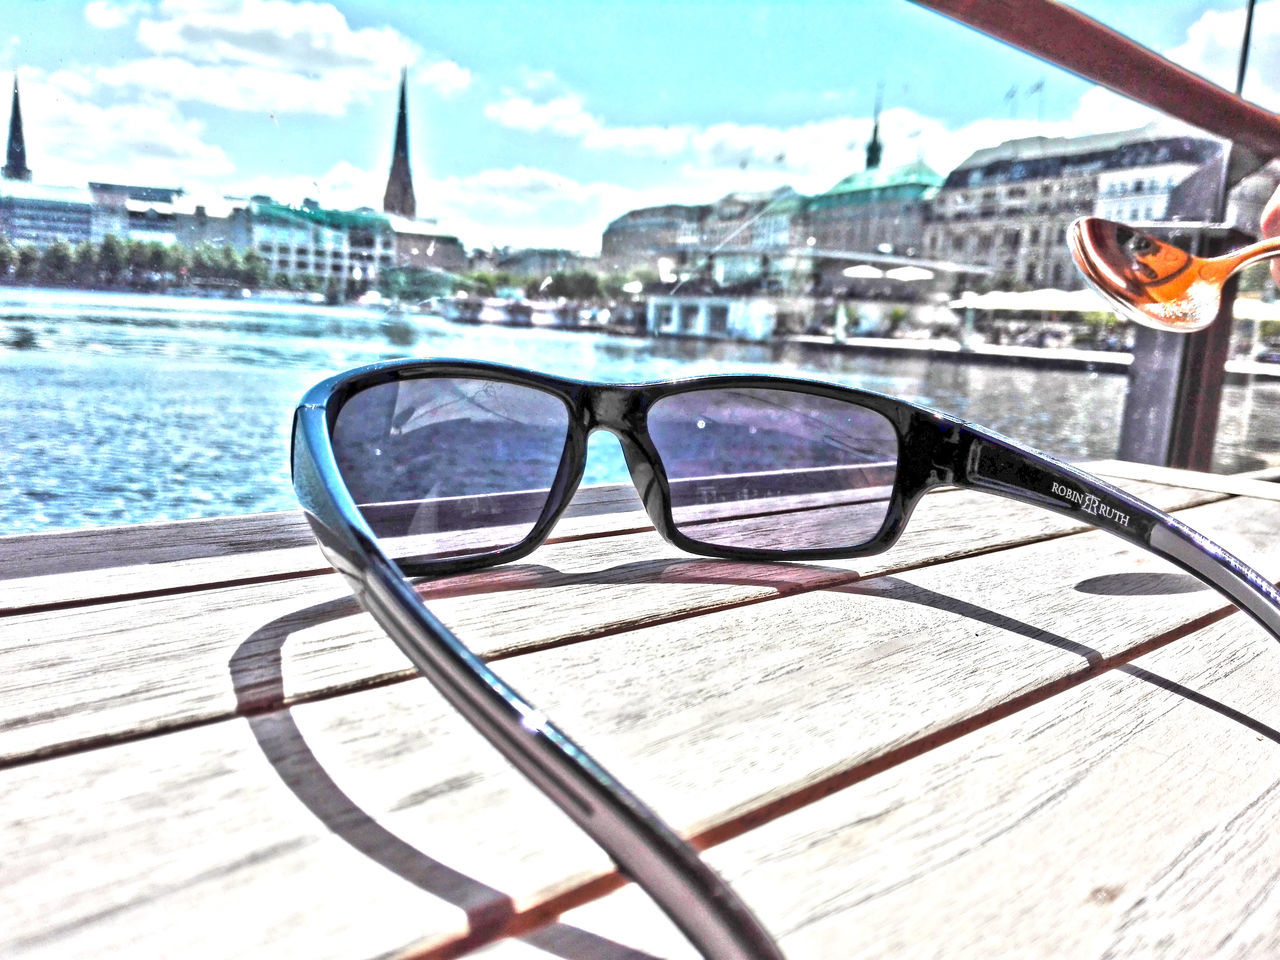 Close-Up Of Sunglasses On Table In City Against Sky